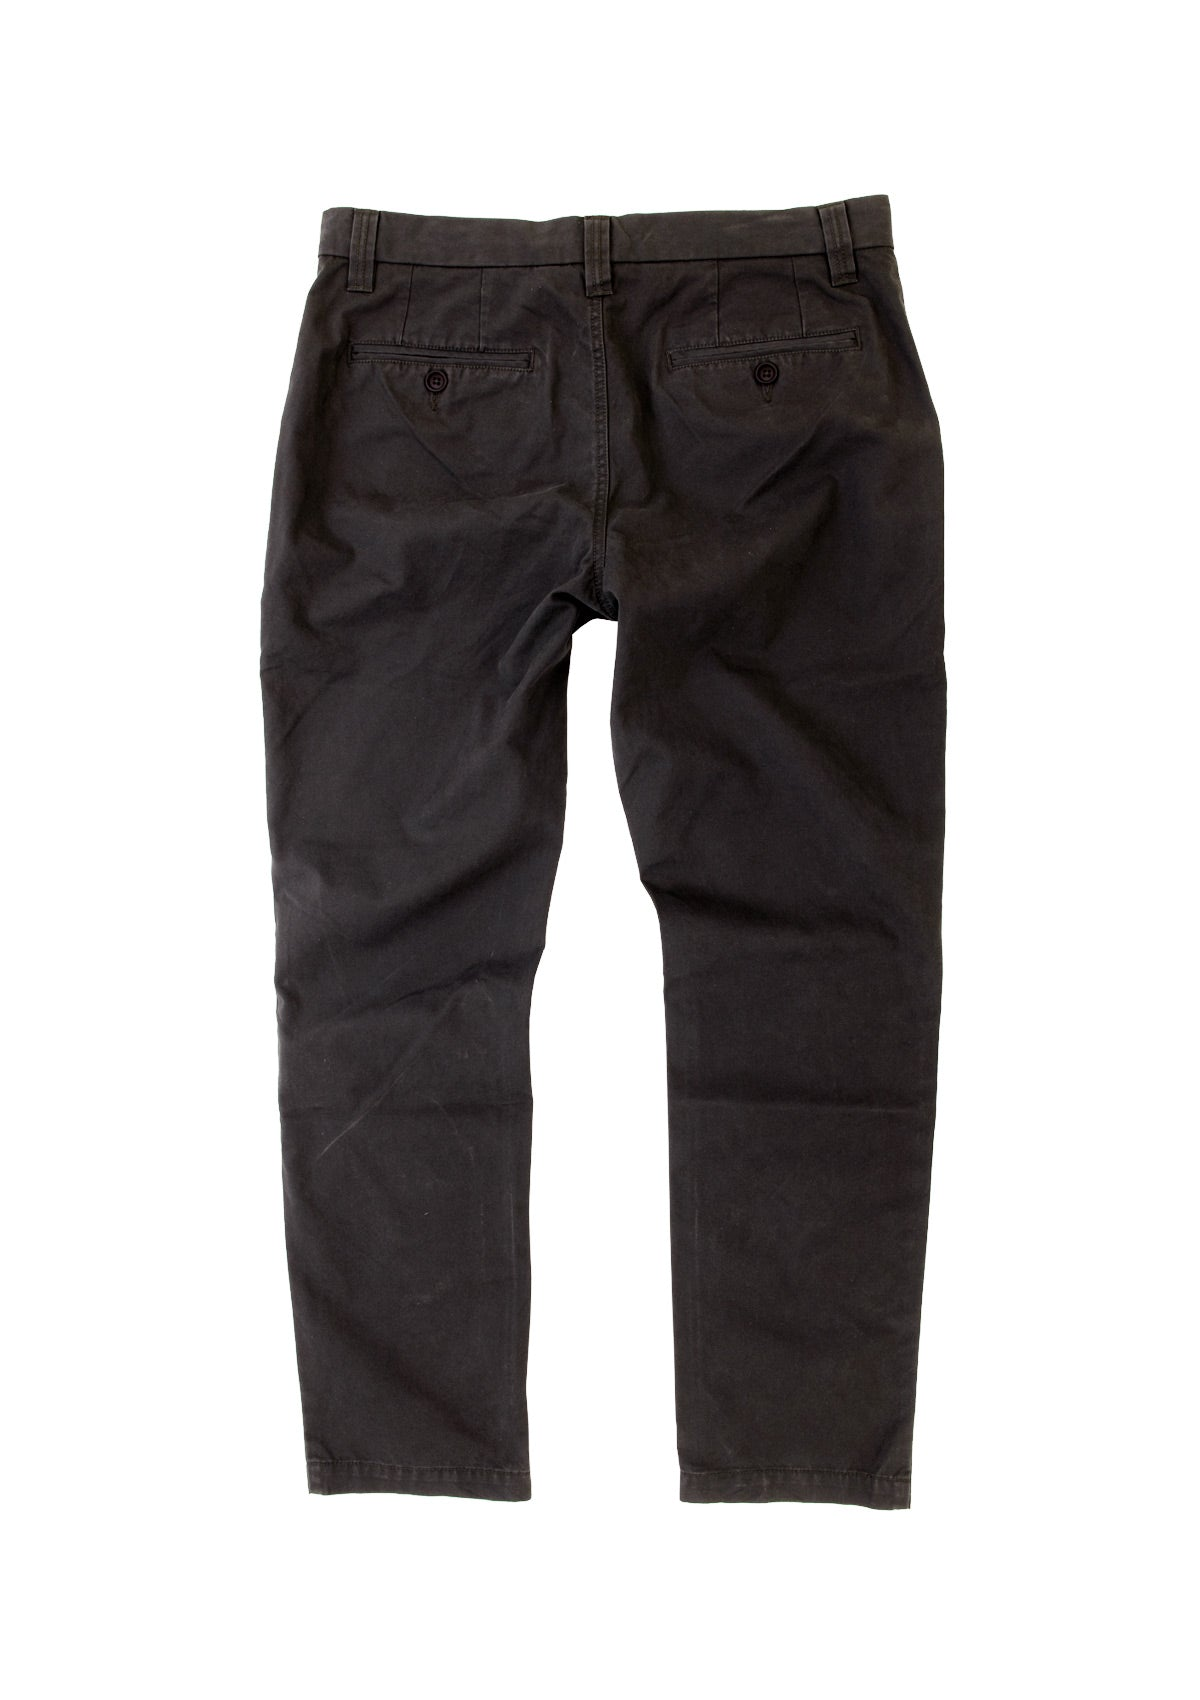 needessentials organic cotton pant black adventure